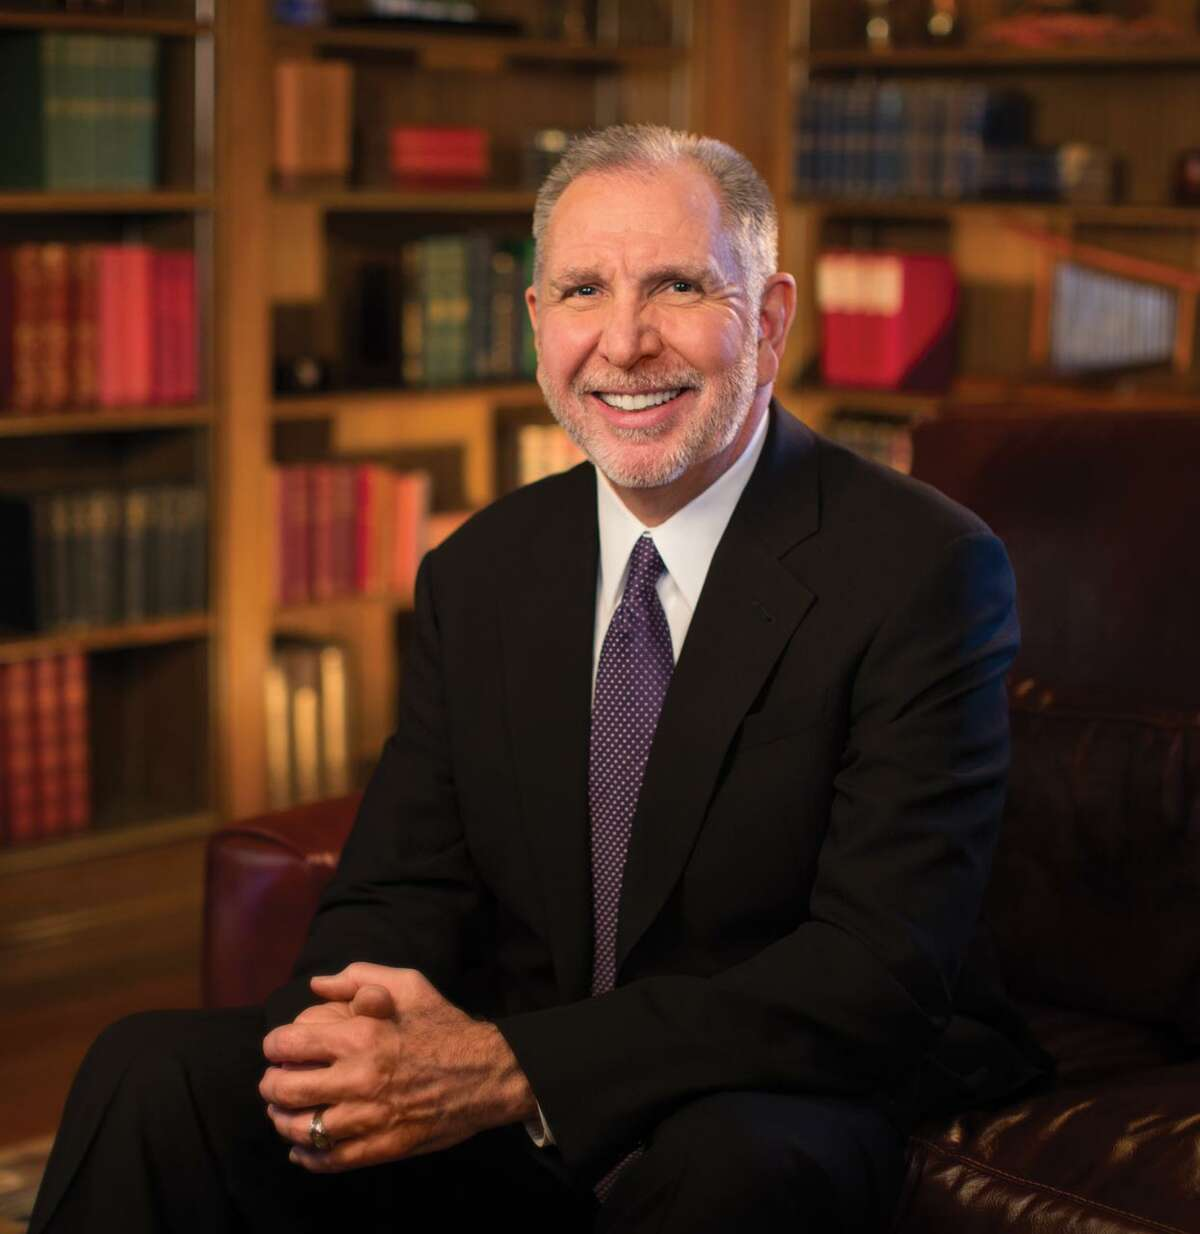 Michael K. Young, the sole finalist for the presidency of Texas A&M University. Credit: University of Washington